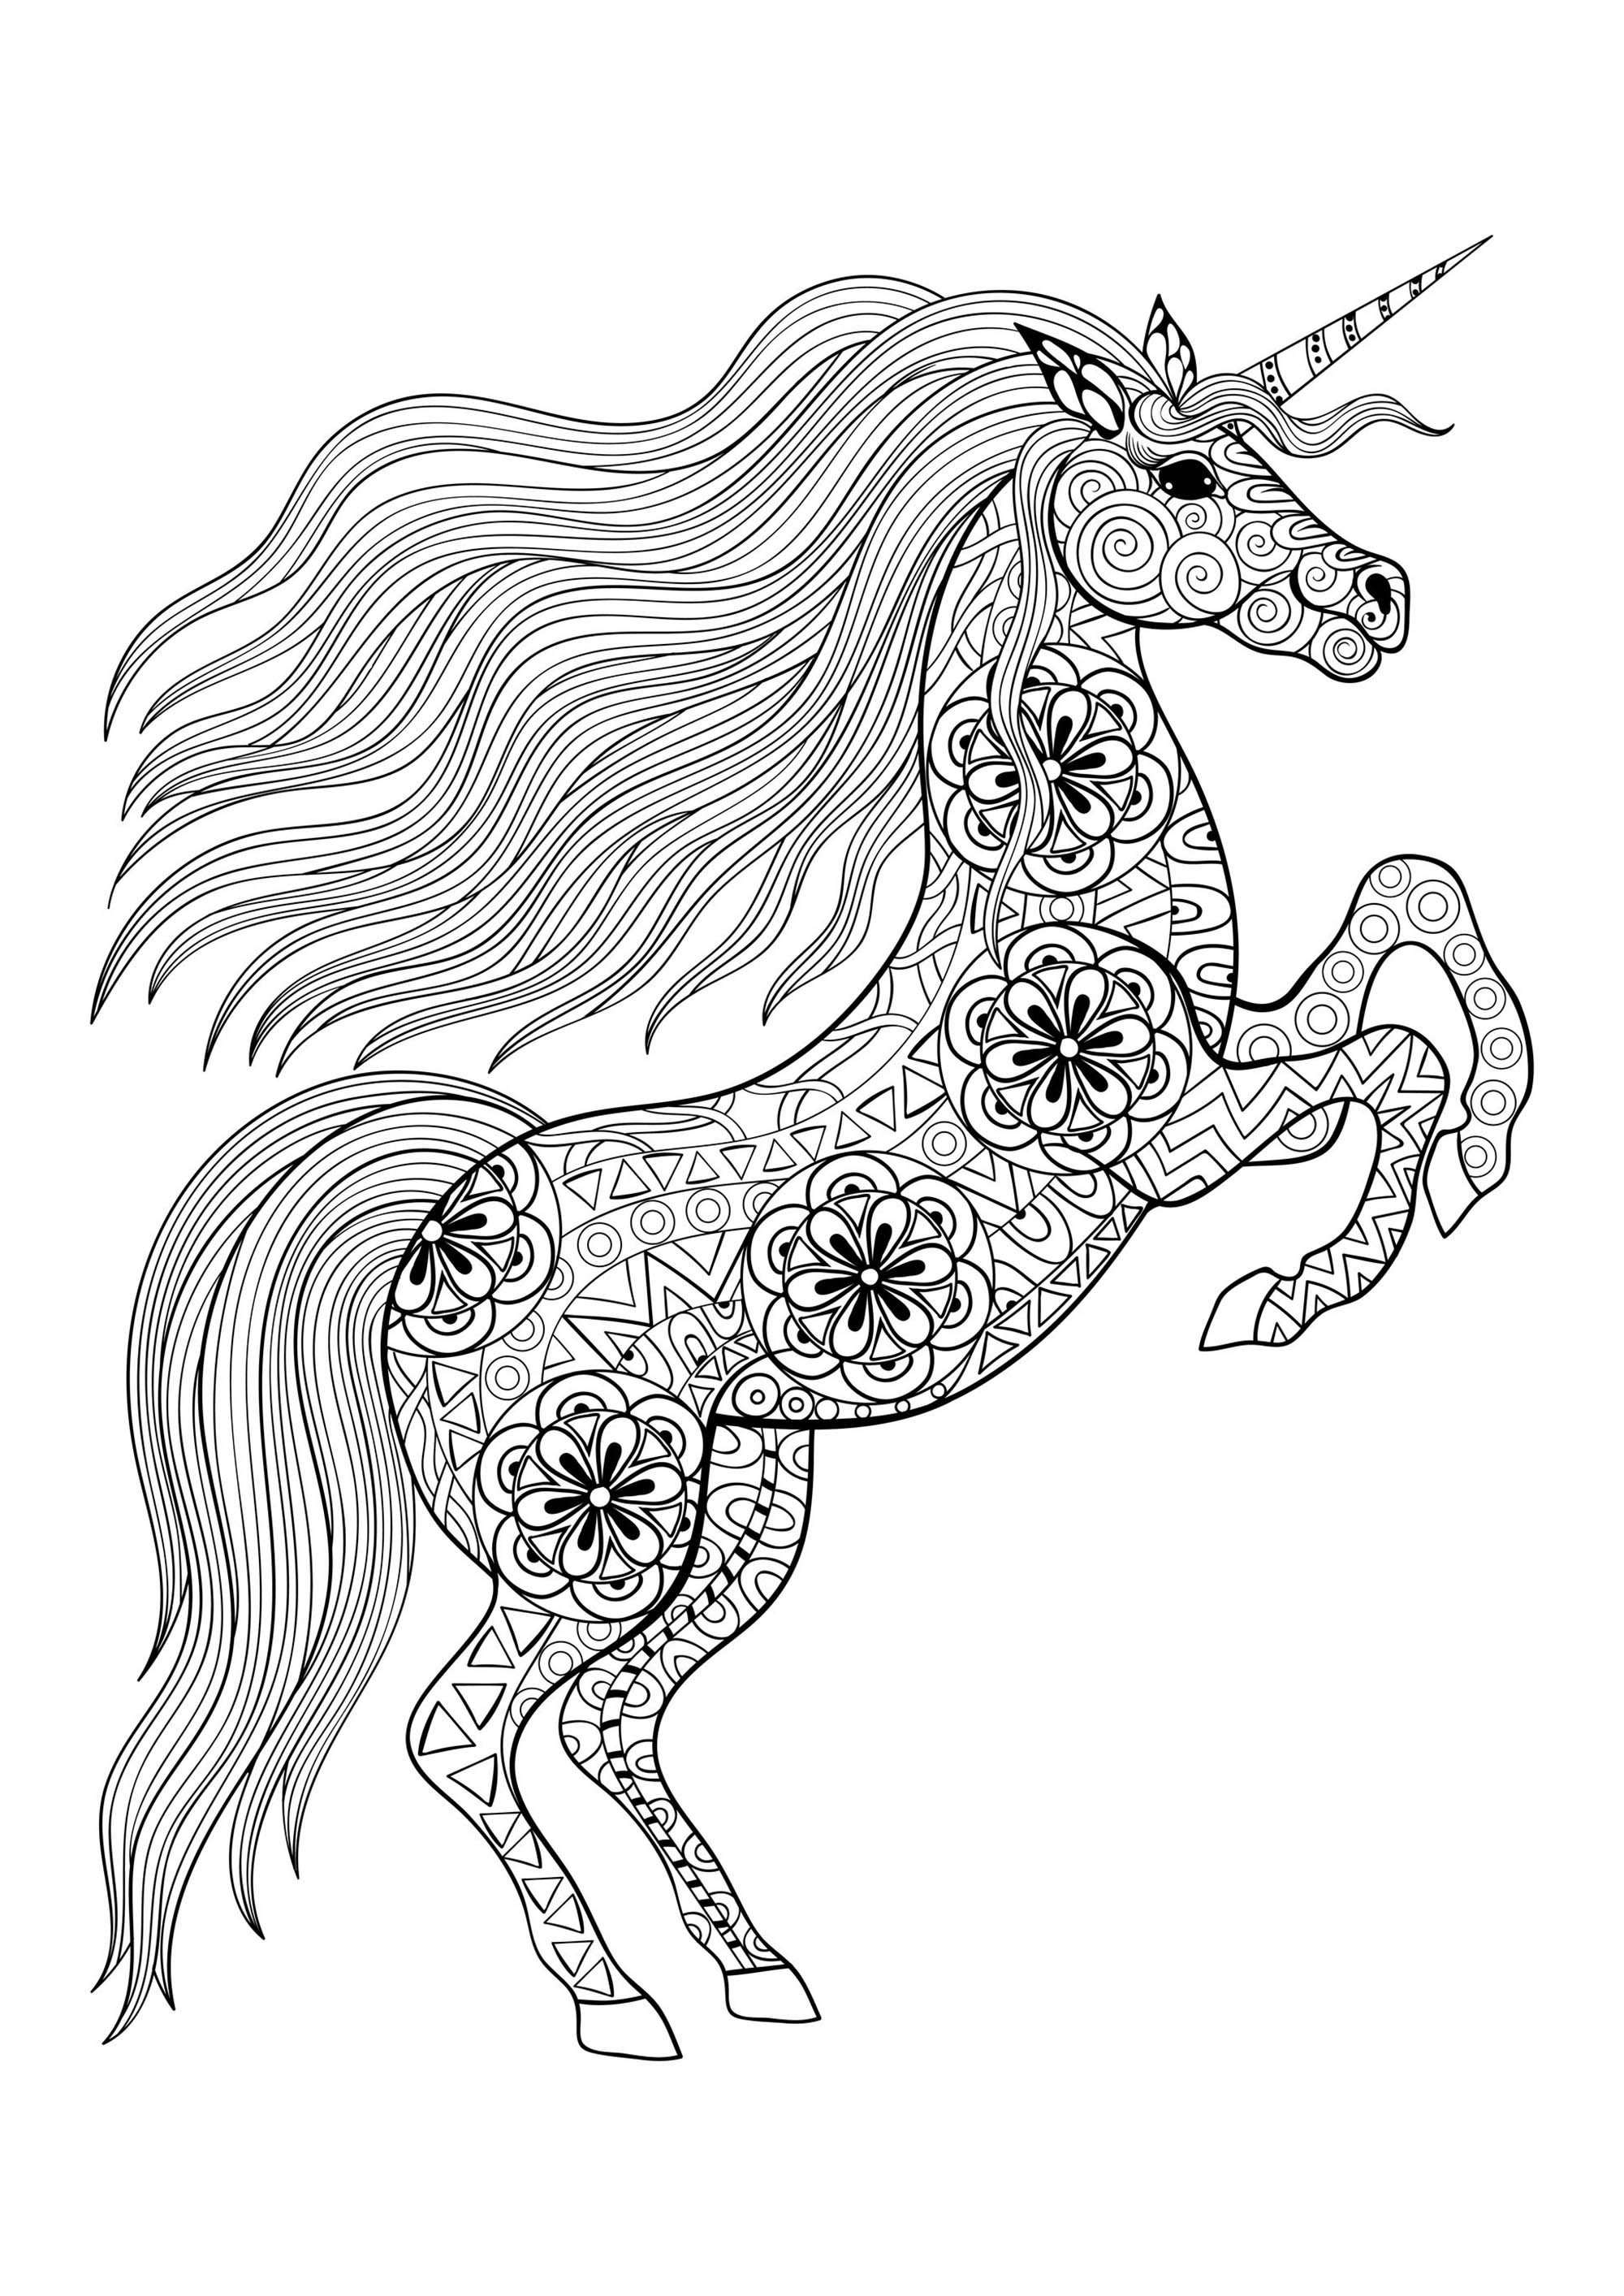 Unicorn On Its Two Back Legs - Unicorns Adult Coloring Pages encequiconcerne Coloriag